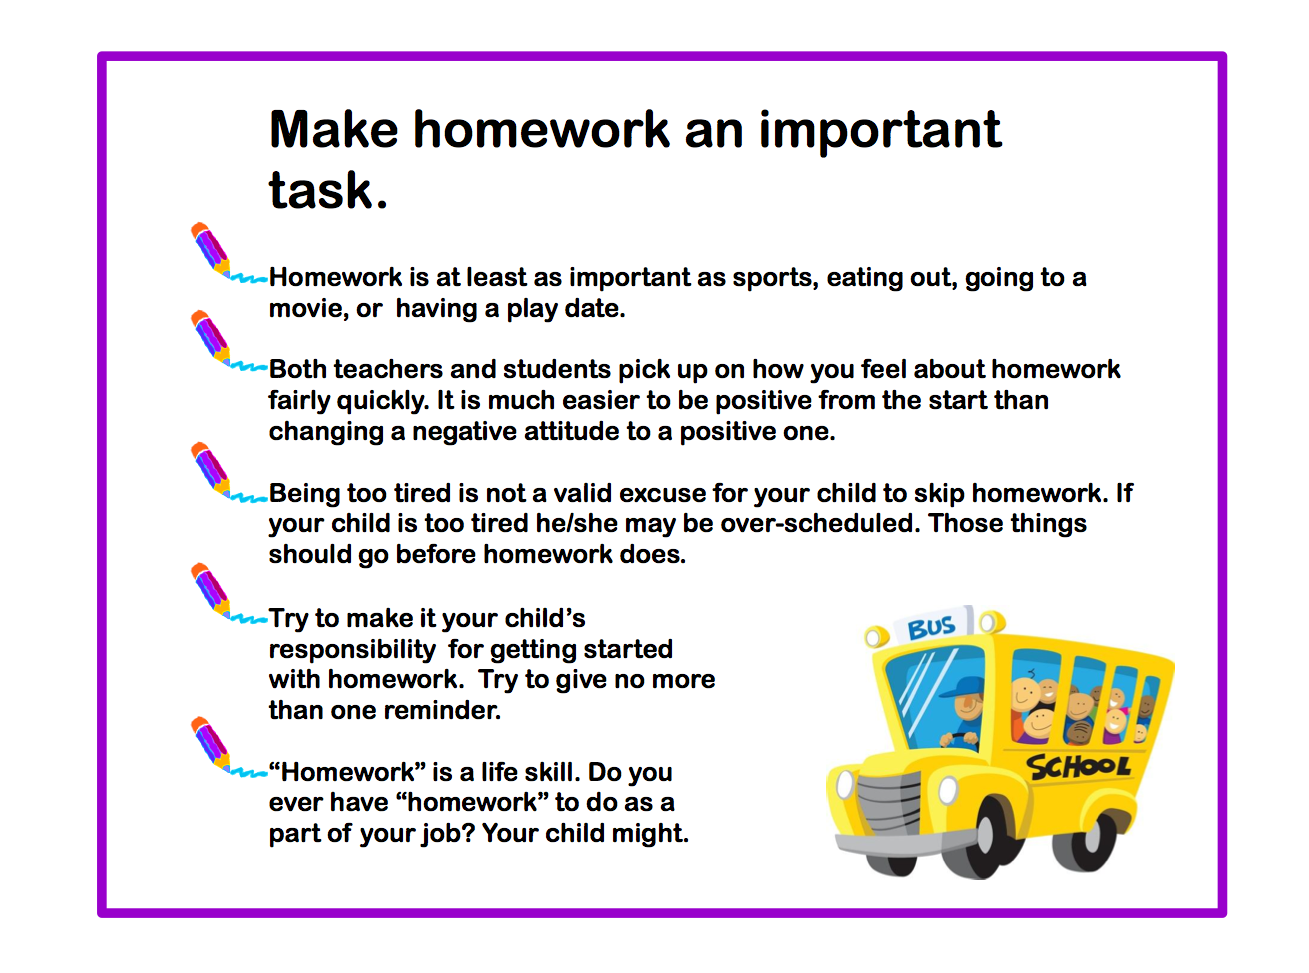 Tips to help parents with homework